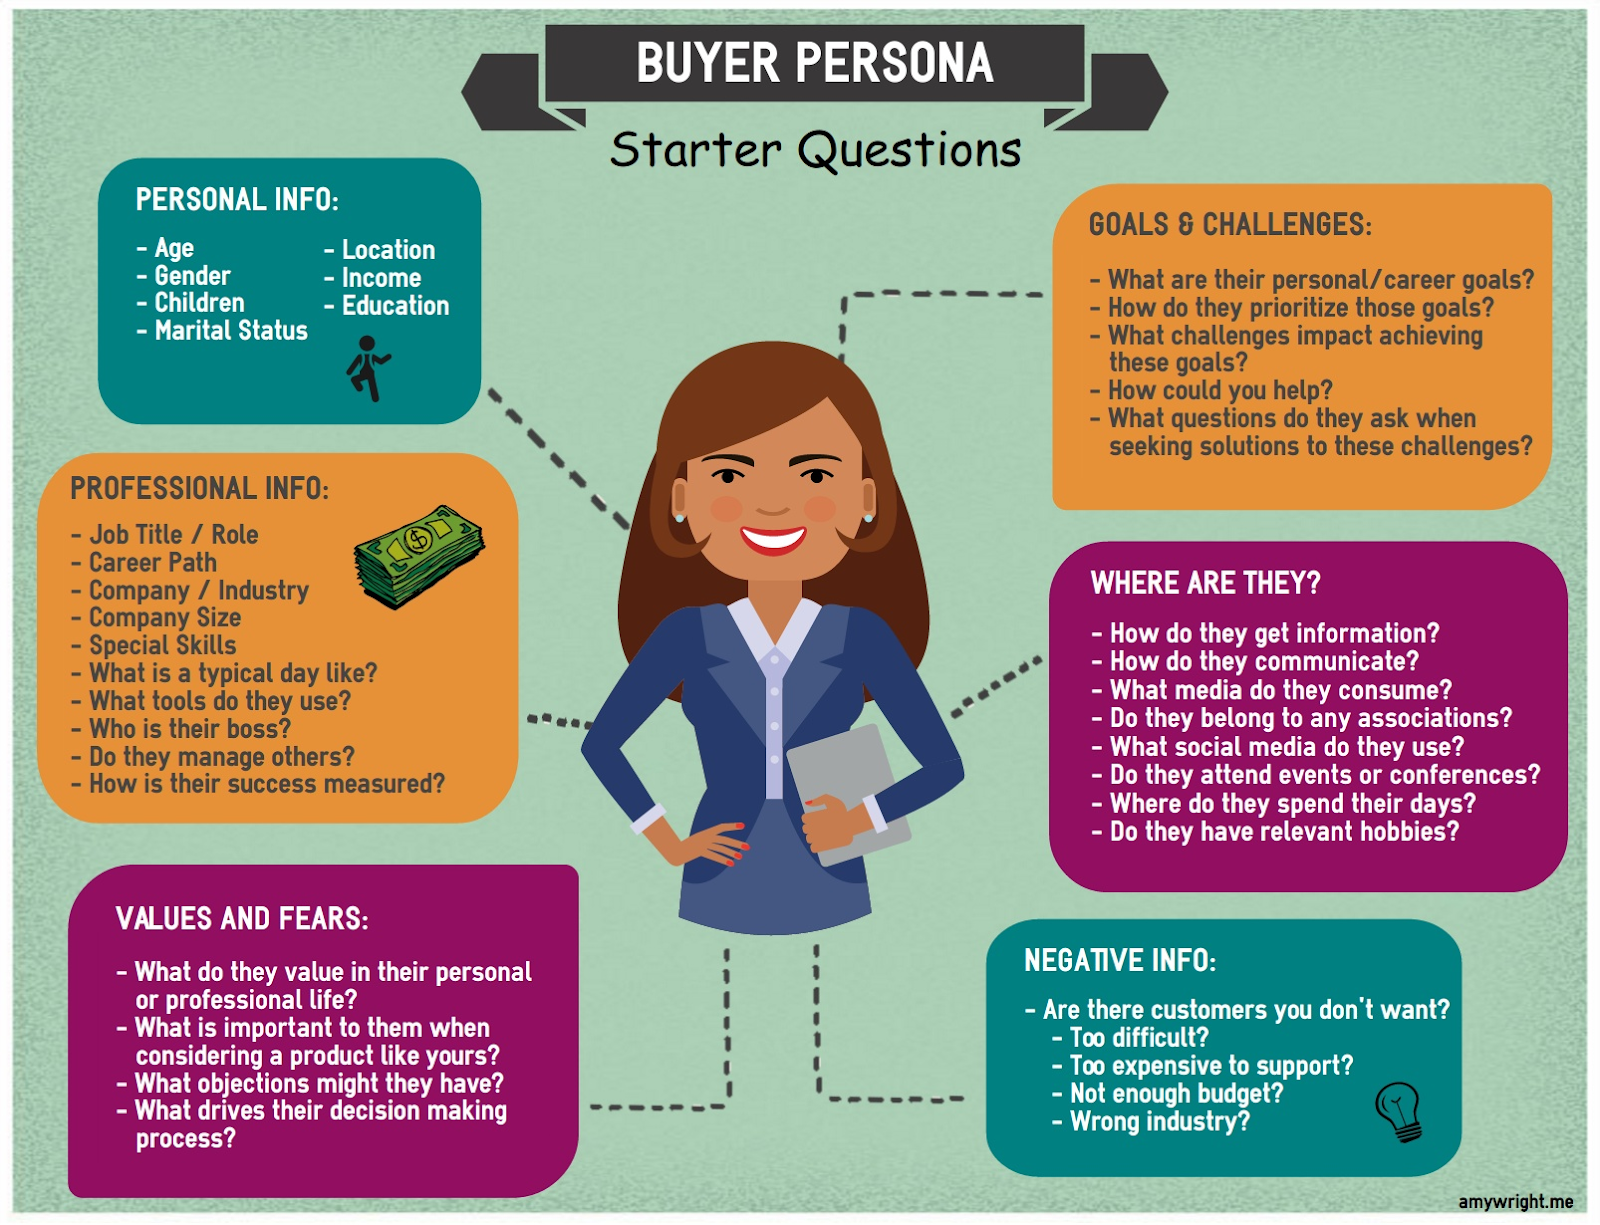 A ton of starter question examples for businesses to create a buyer persona.